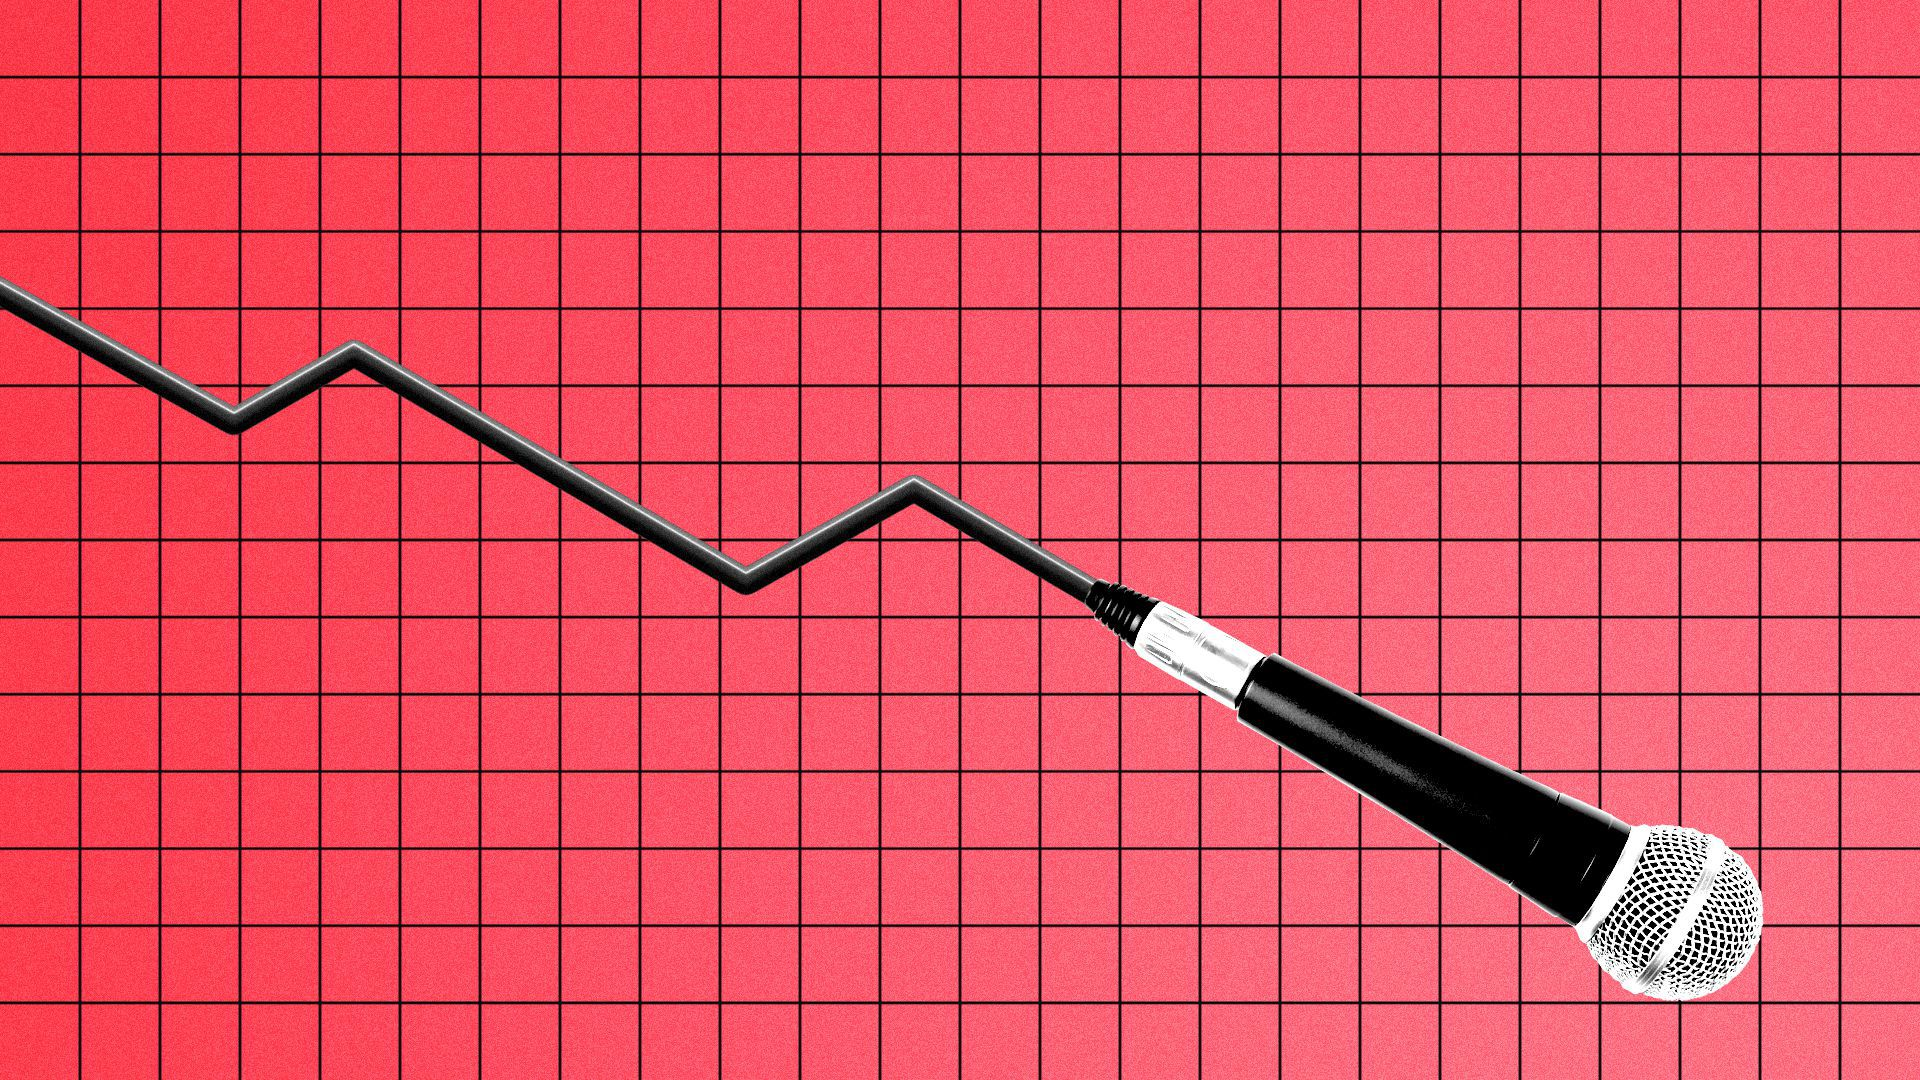 Illustration of a microphone and cord in the shape of a downward chart trendline.